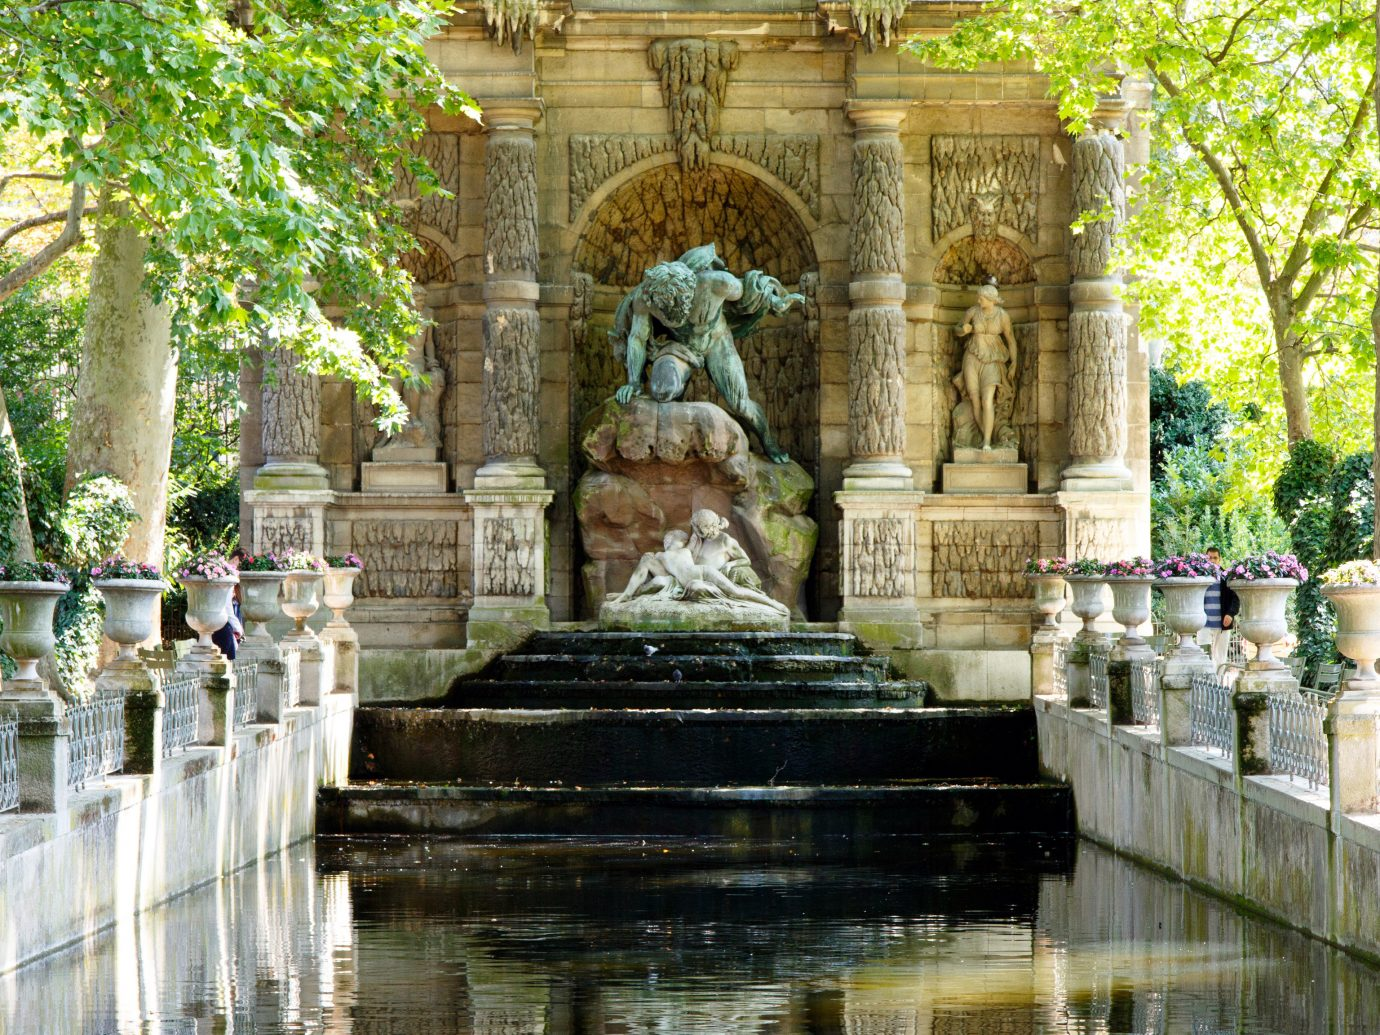 France Paris Trip Ideas landmark tourism temple water feature palace place of worship estate fountain ancient history shrine monument Garden altar colonnade